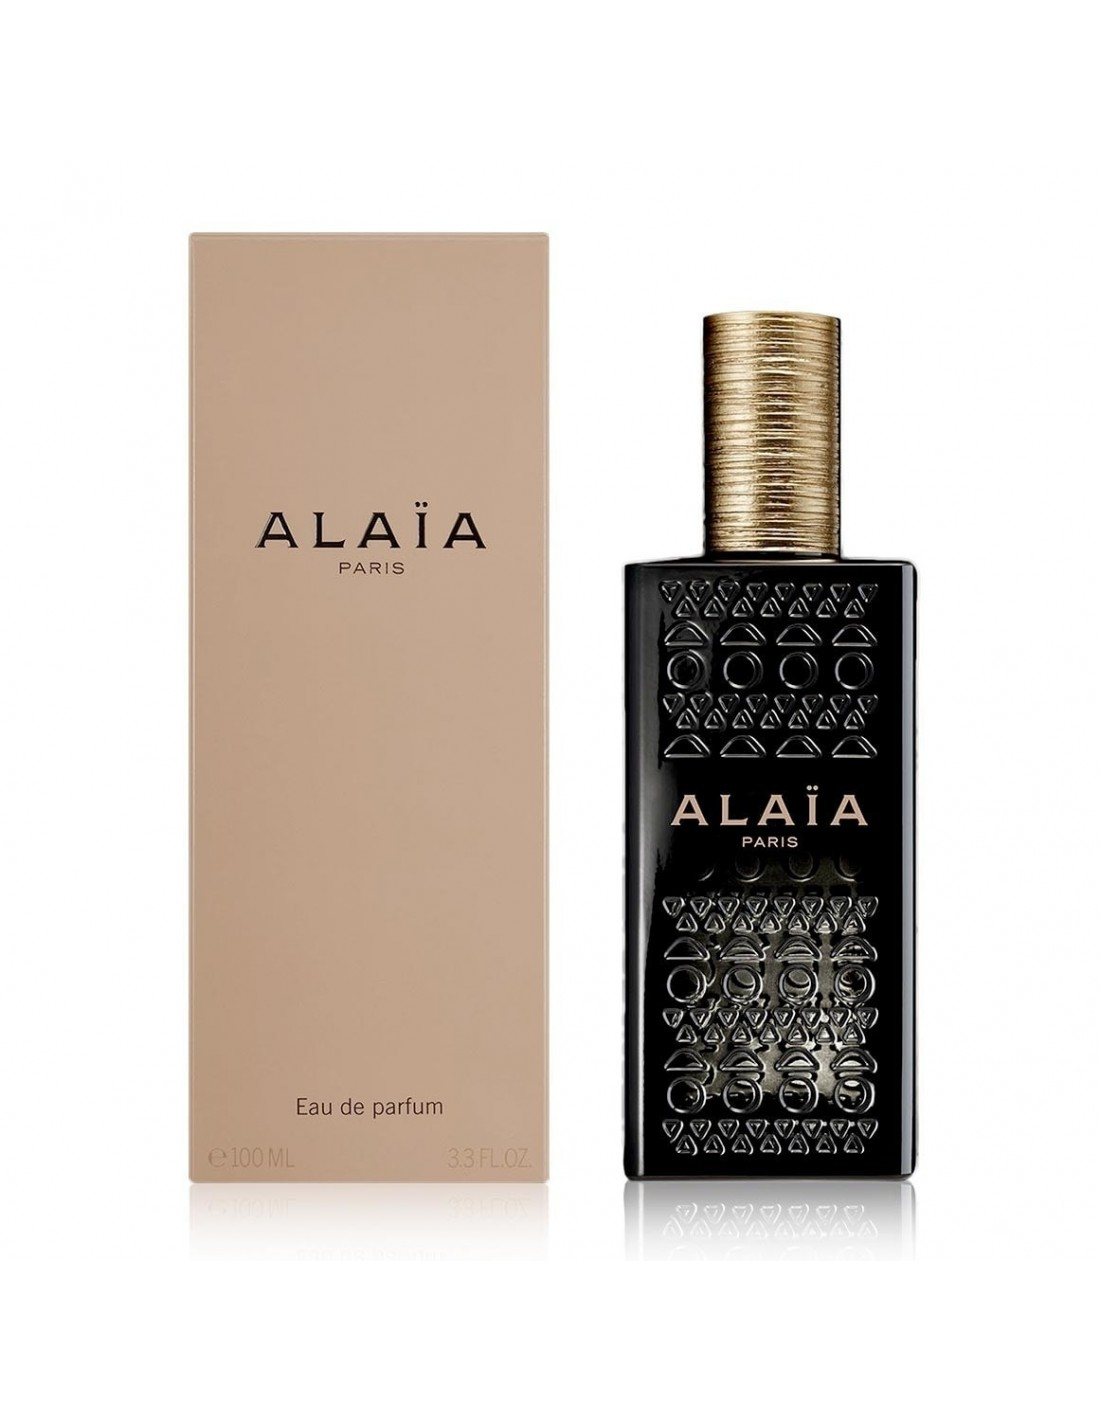 alaia paris eau de parfum 50 ml spray azzurra profumi. Black Bedroom Furniture Sets. Home Design Ideas